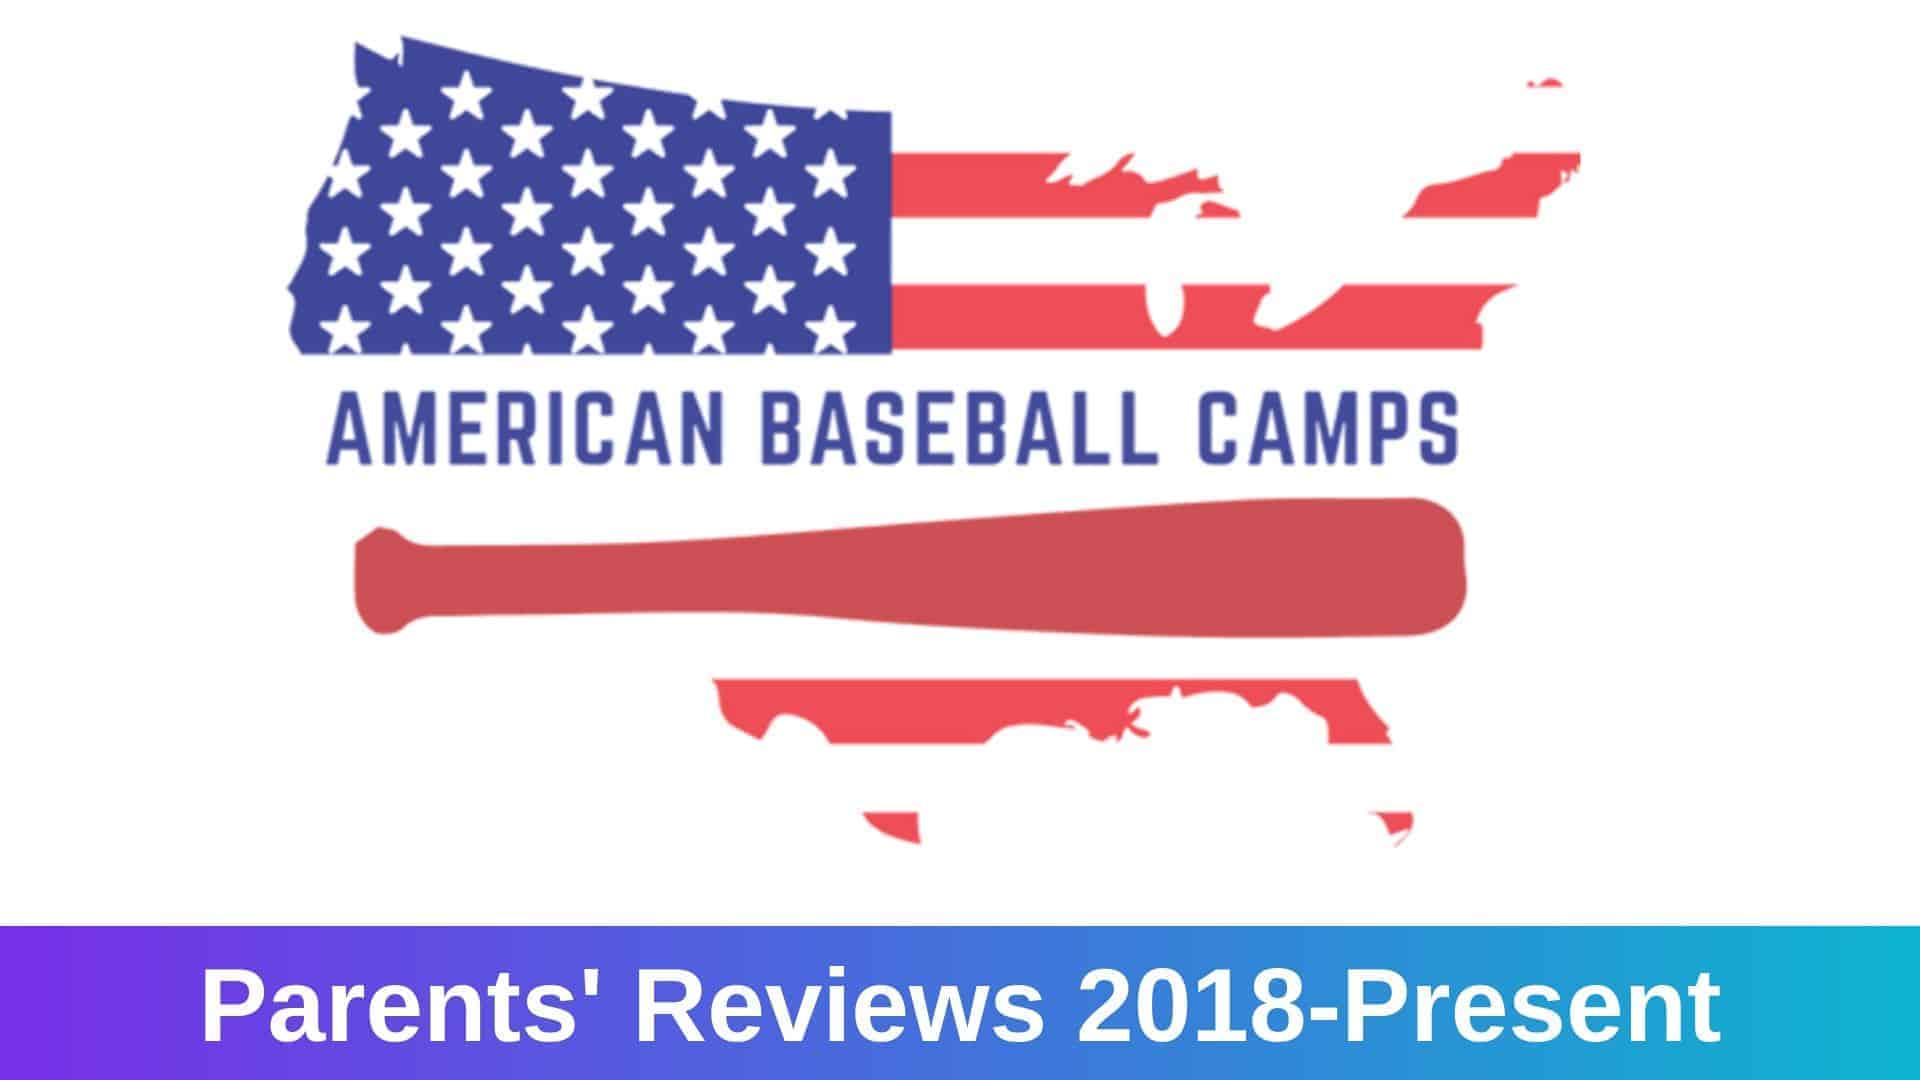 American Baseball Camps Reviews